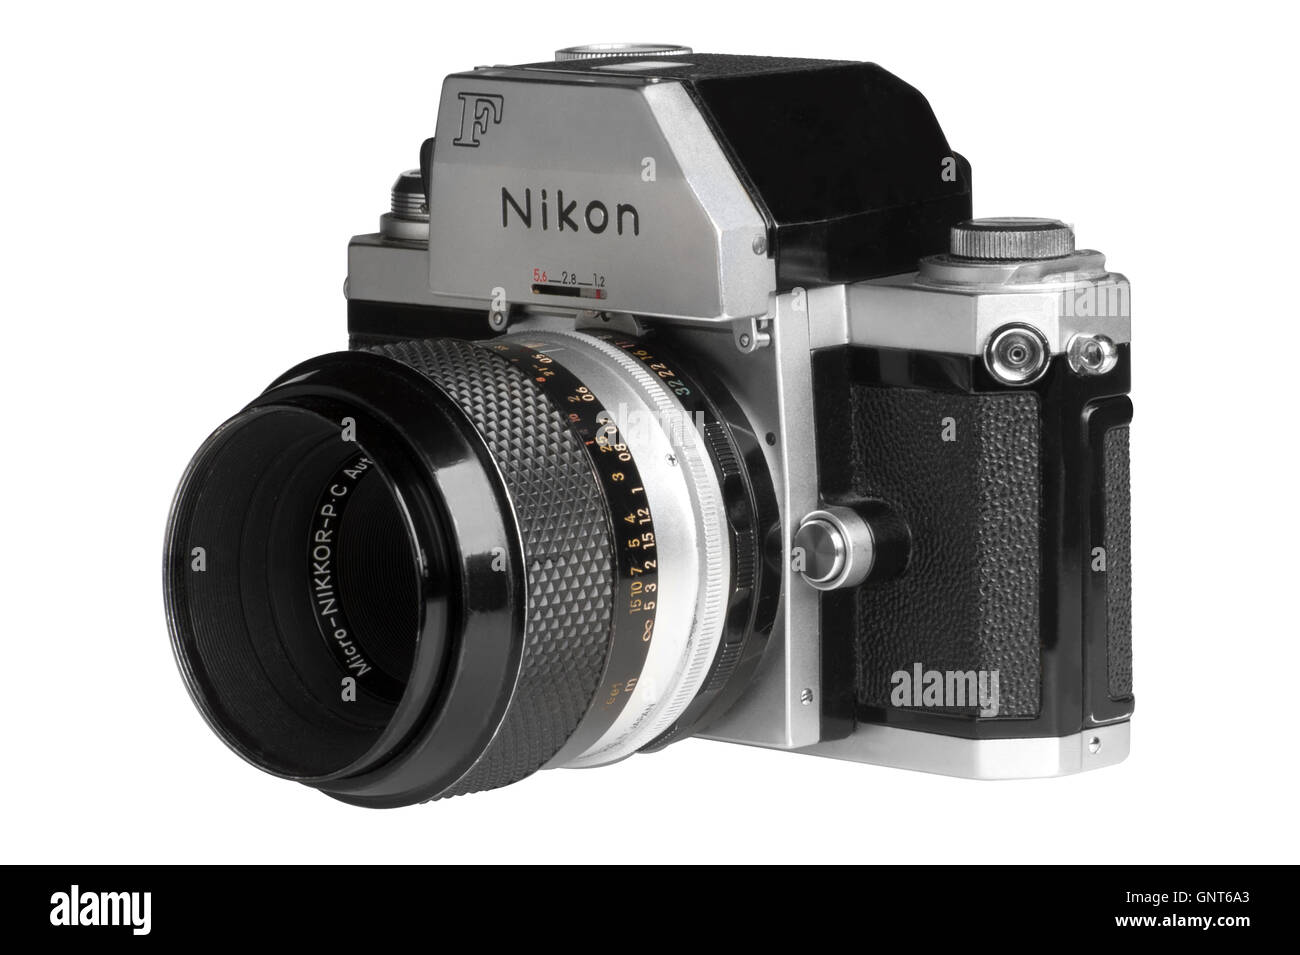 1971 Nikon F with Photomic FTn metering head, 55mm Micro-Nikkor attached.  Facing left - Stock Image